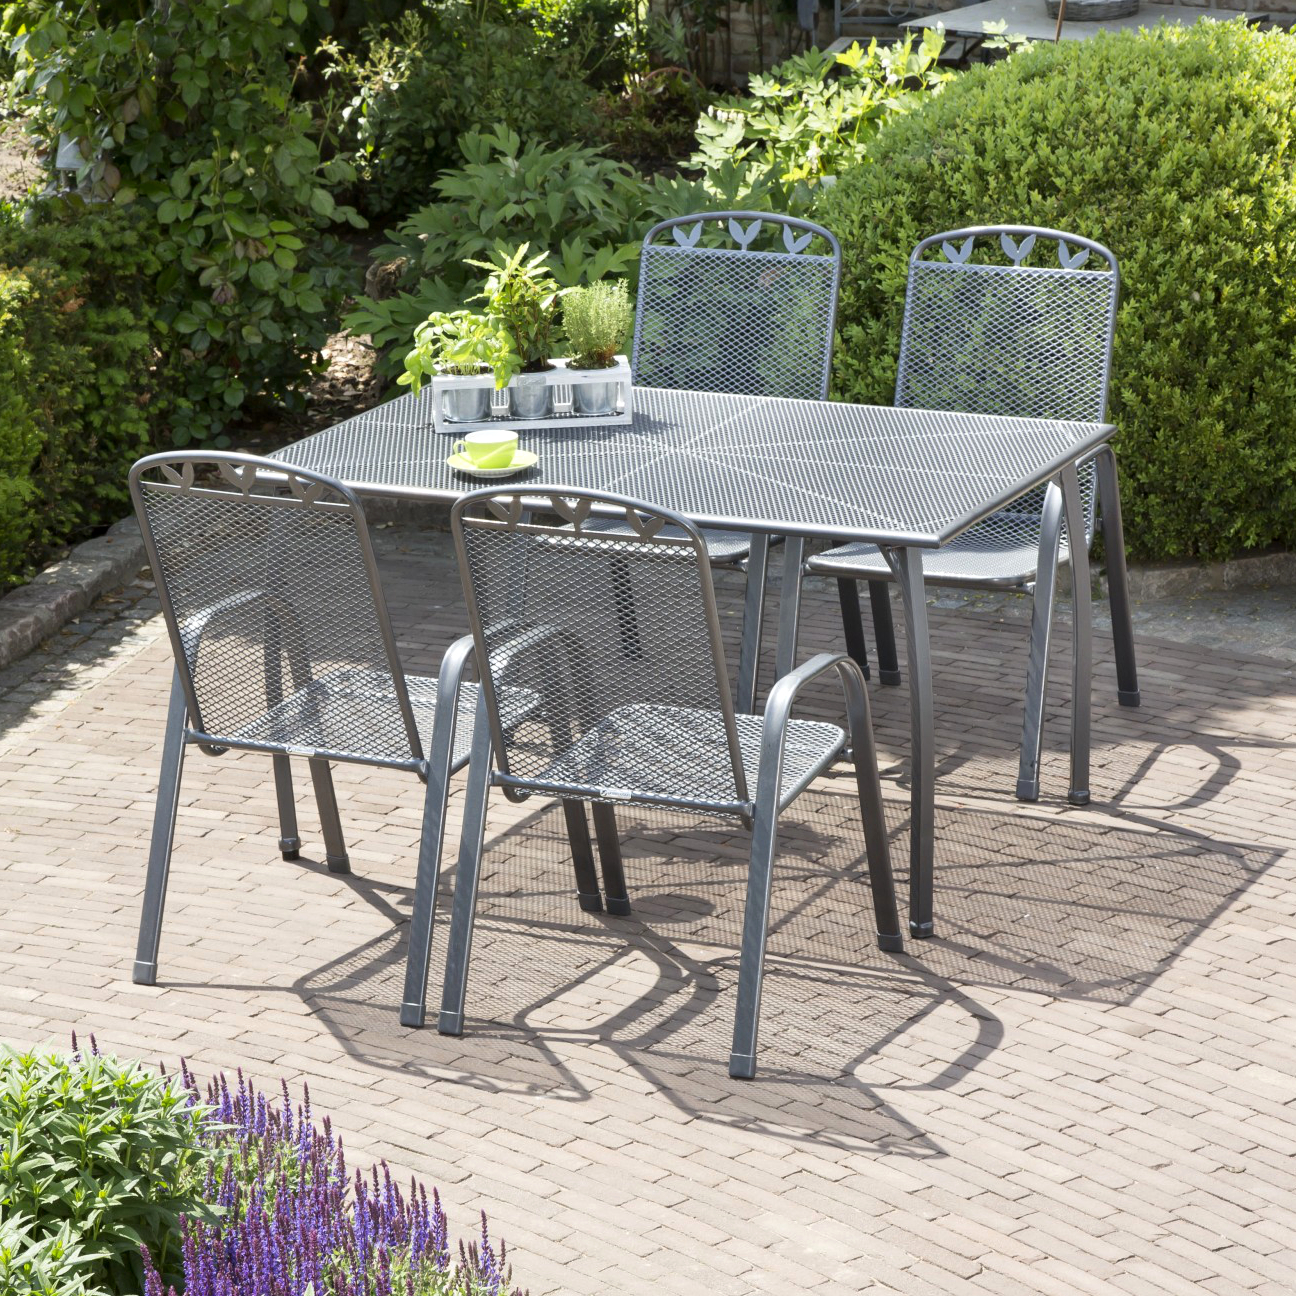 Baumarkt Göllnitz Online Shop | Greemotion Gartenmöbel Set